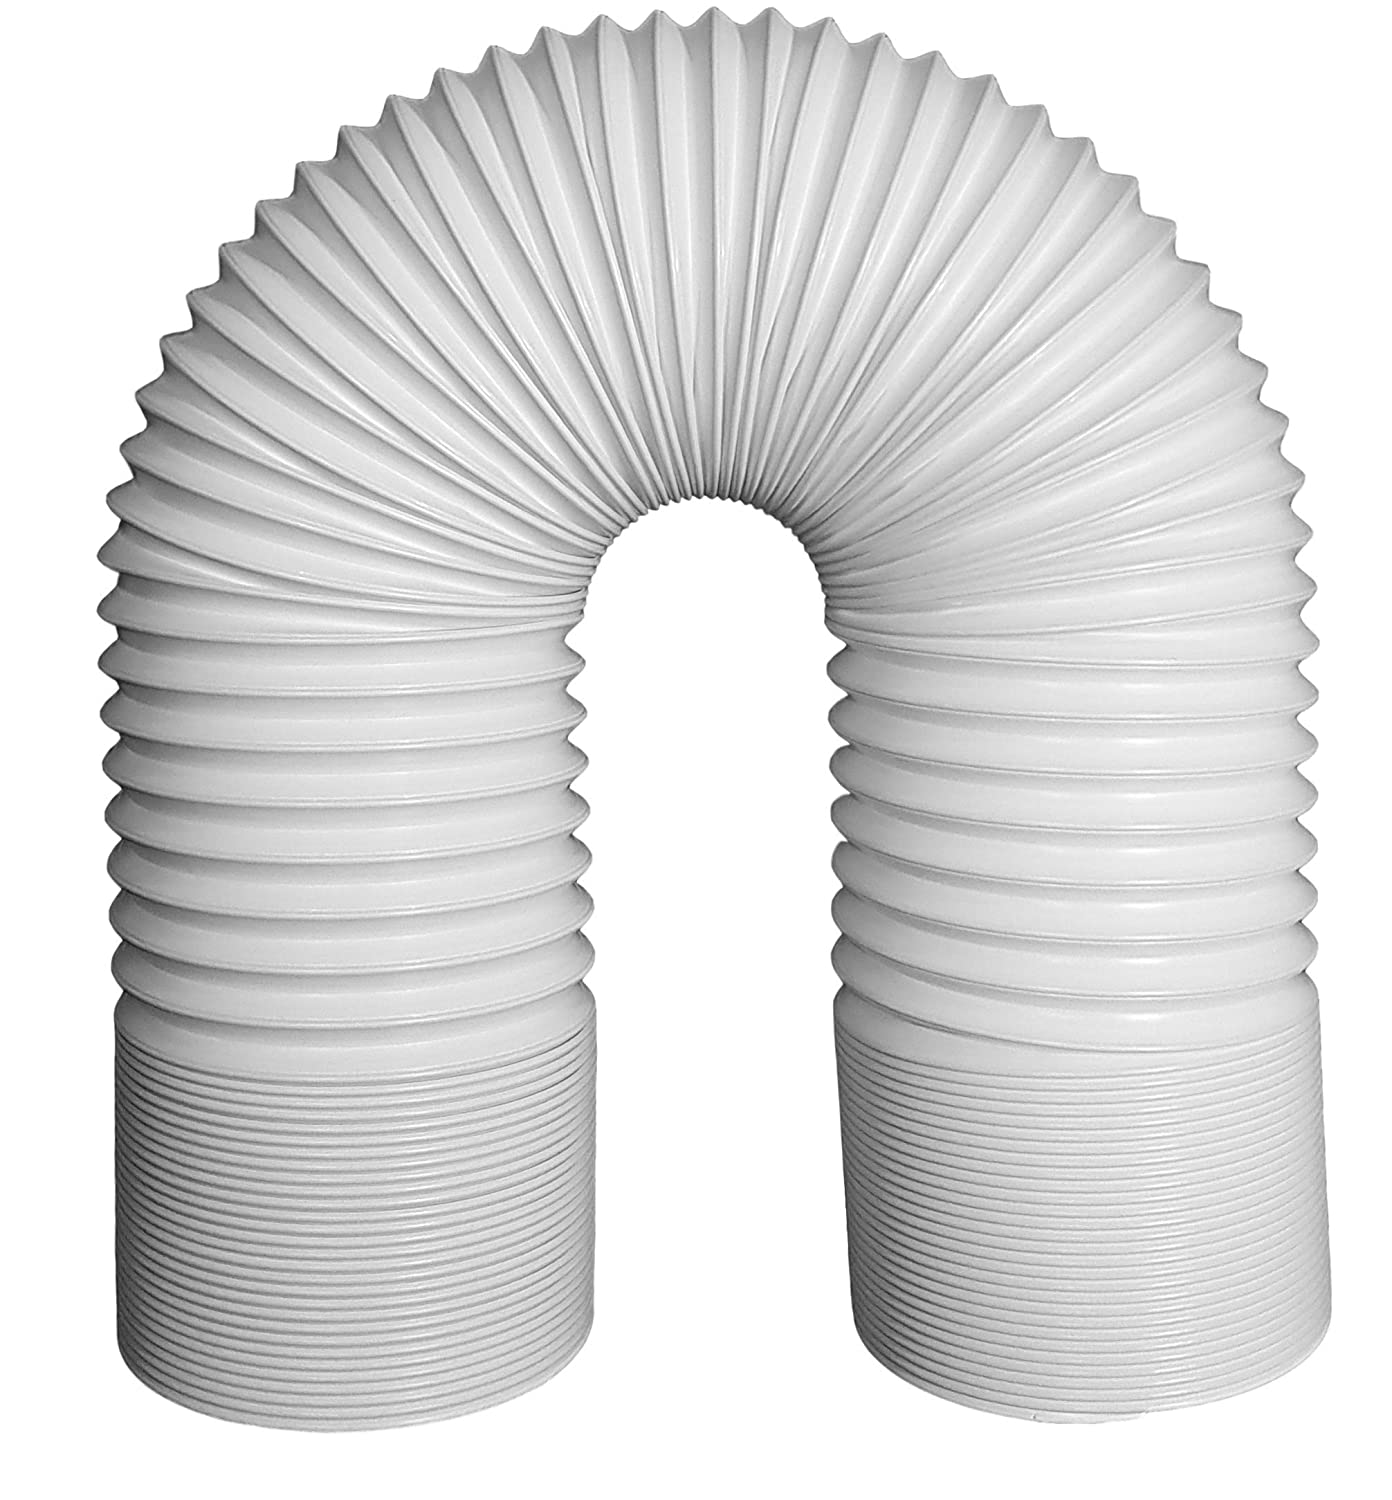 Svenson Air Conditioner Exhaust Hose 5 Inch Diameter Counterclockwise Steel Reinforced (59 Inch Length)